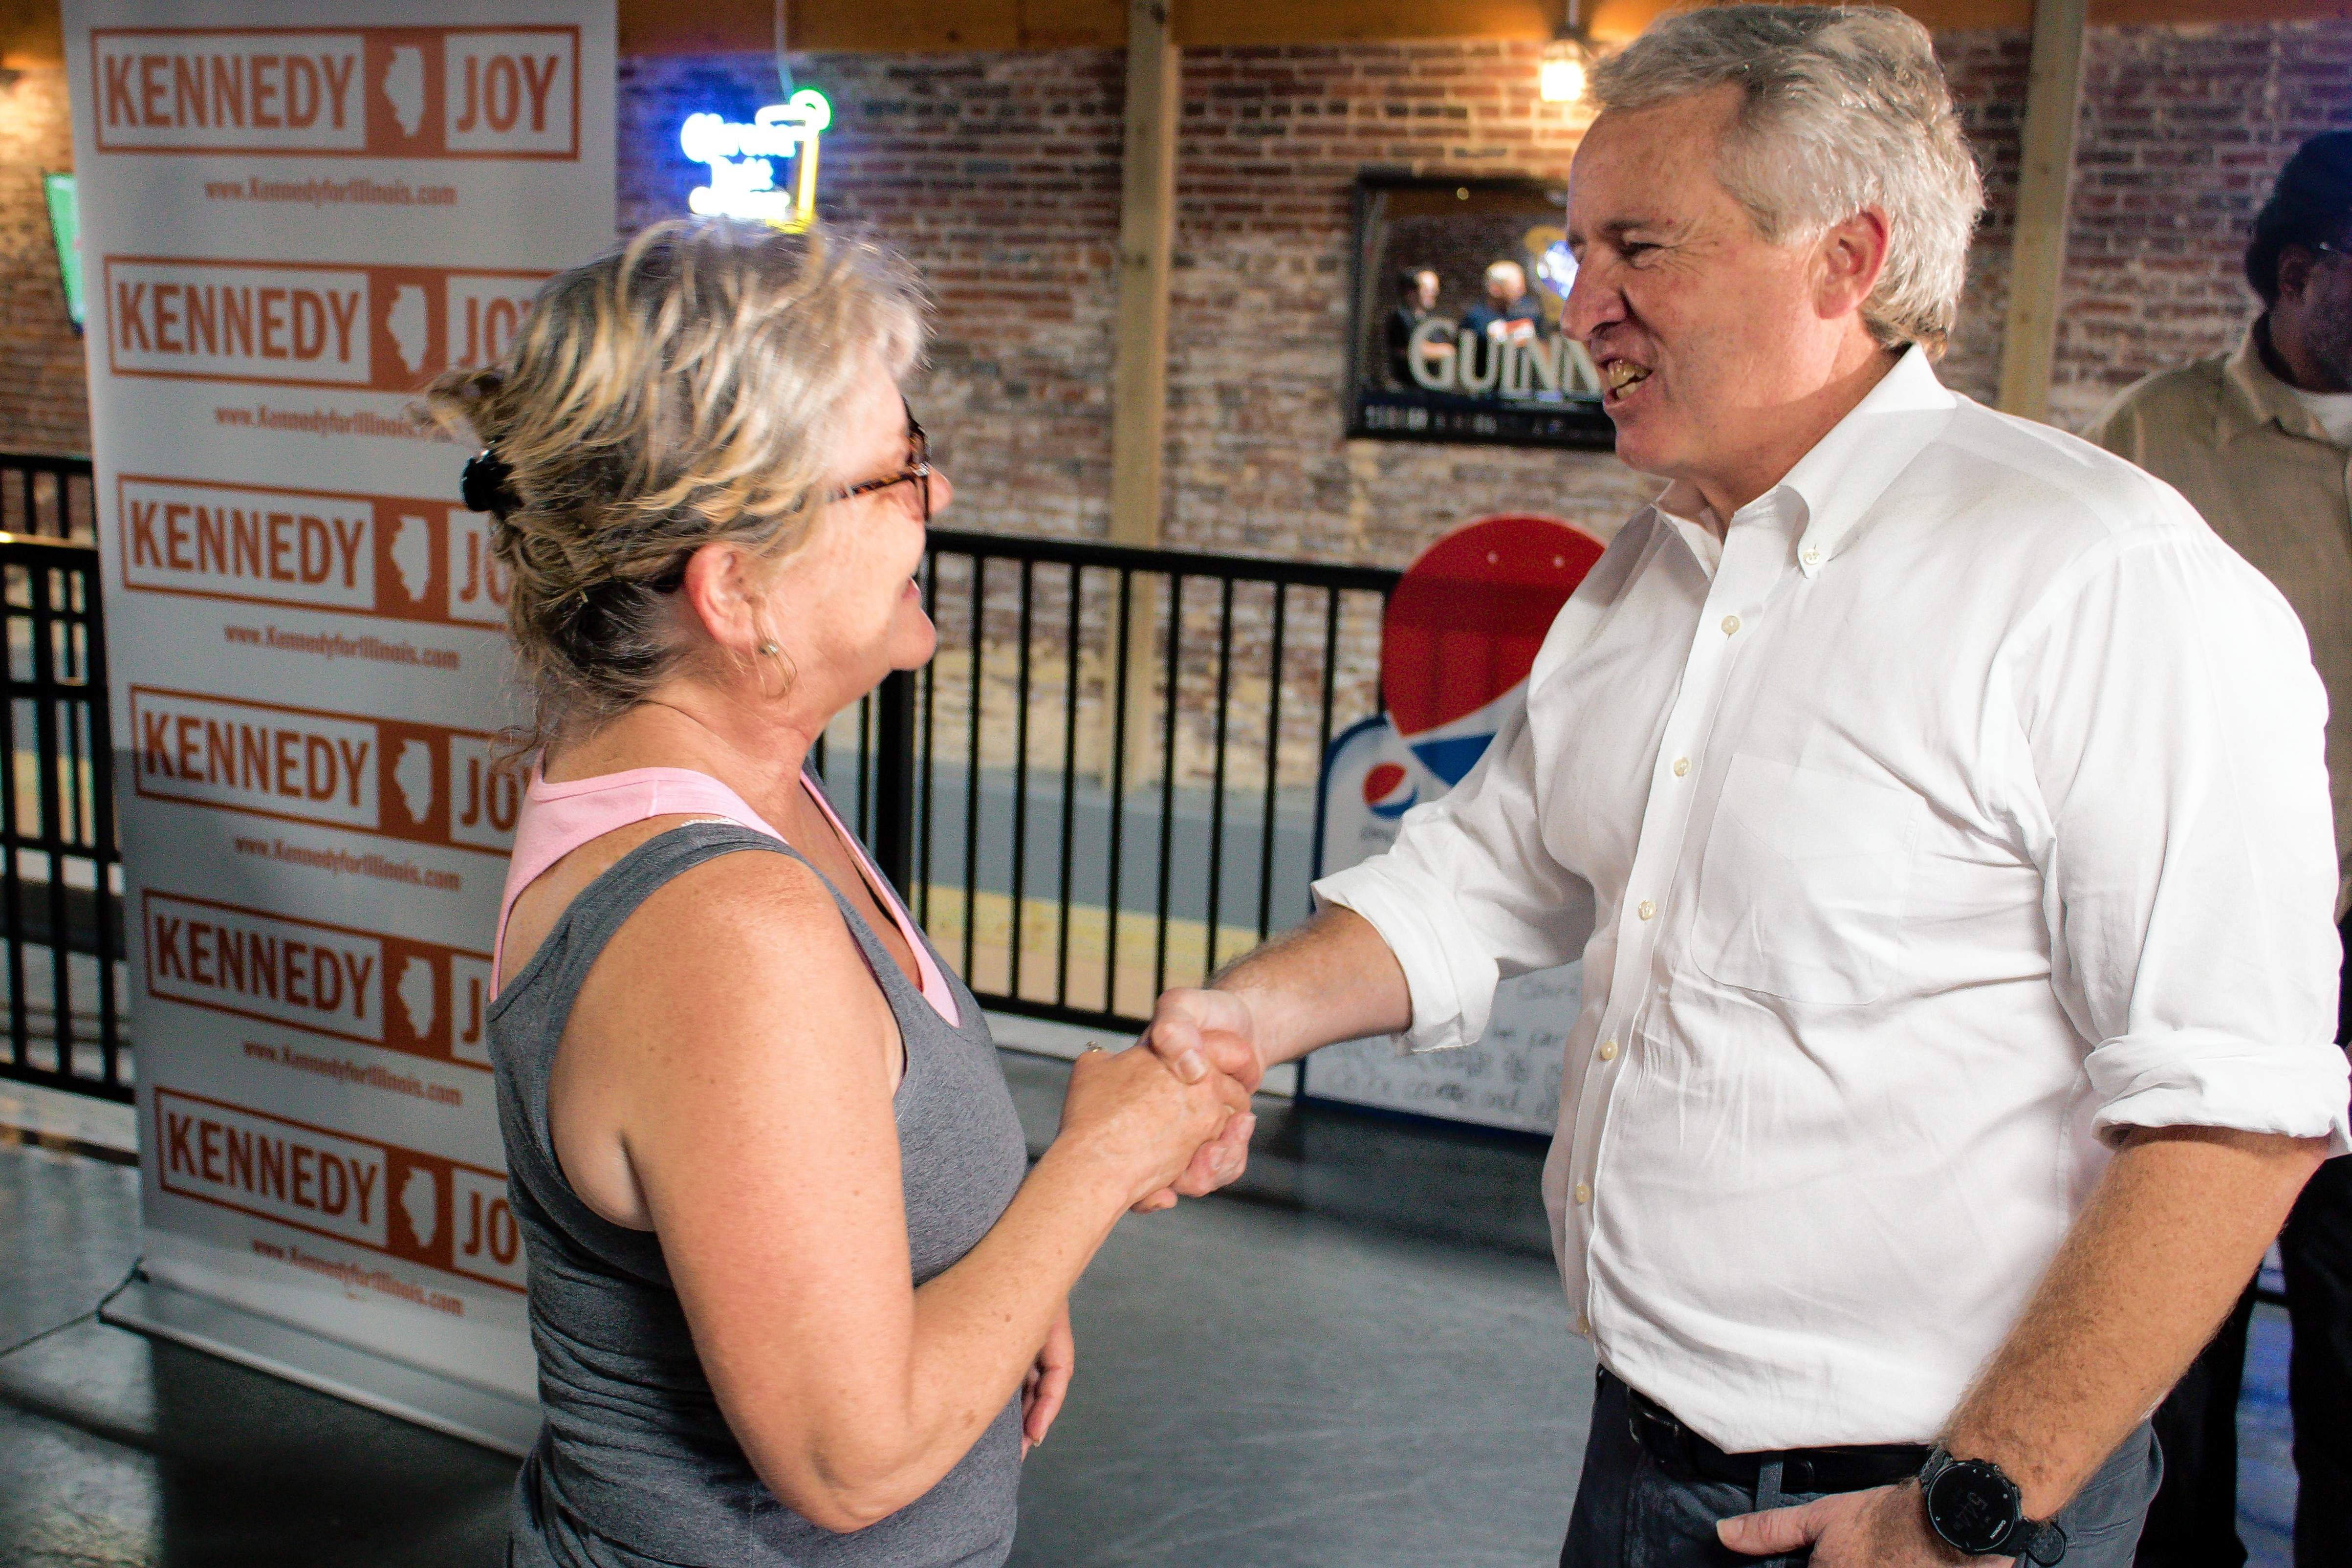 Kristin Moore photoChris Kennedy, candidate for Illinois governor, visits Pookie's Beer, Burgers, and Bocce in downtown Marion Saturday. Kennedy greeted everyone there, including Susan Pierce of Marion. Pierce also shook Chris's uncle, President John F. Kennedy's hand when she was 4 years old and said she was just as excited to shake Chris's hand.